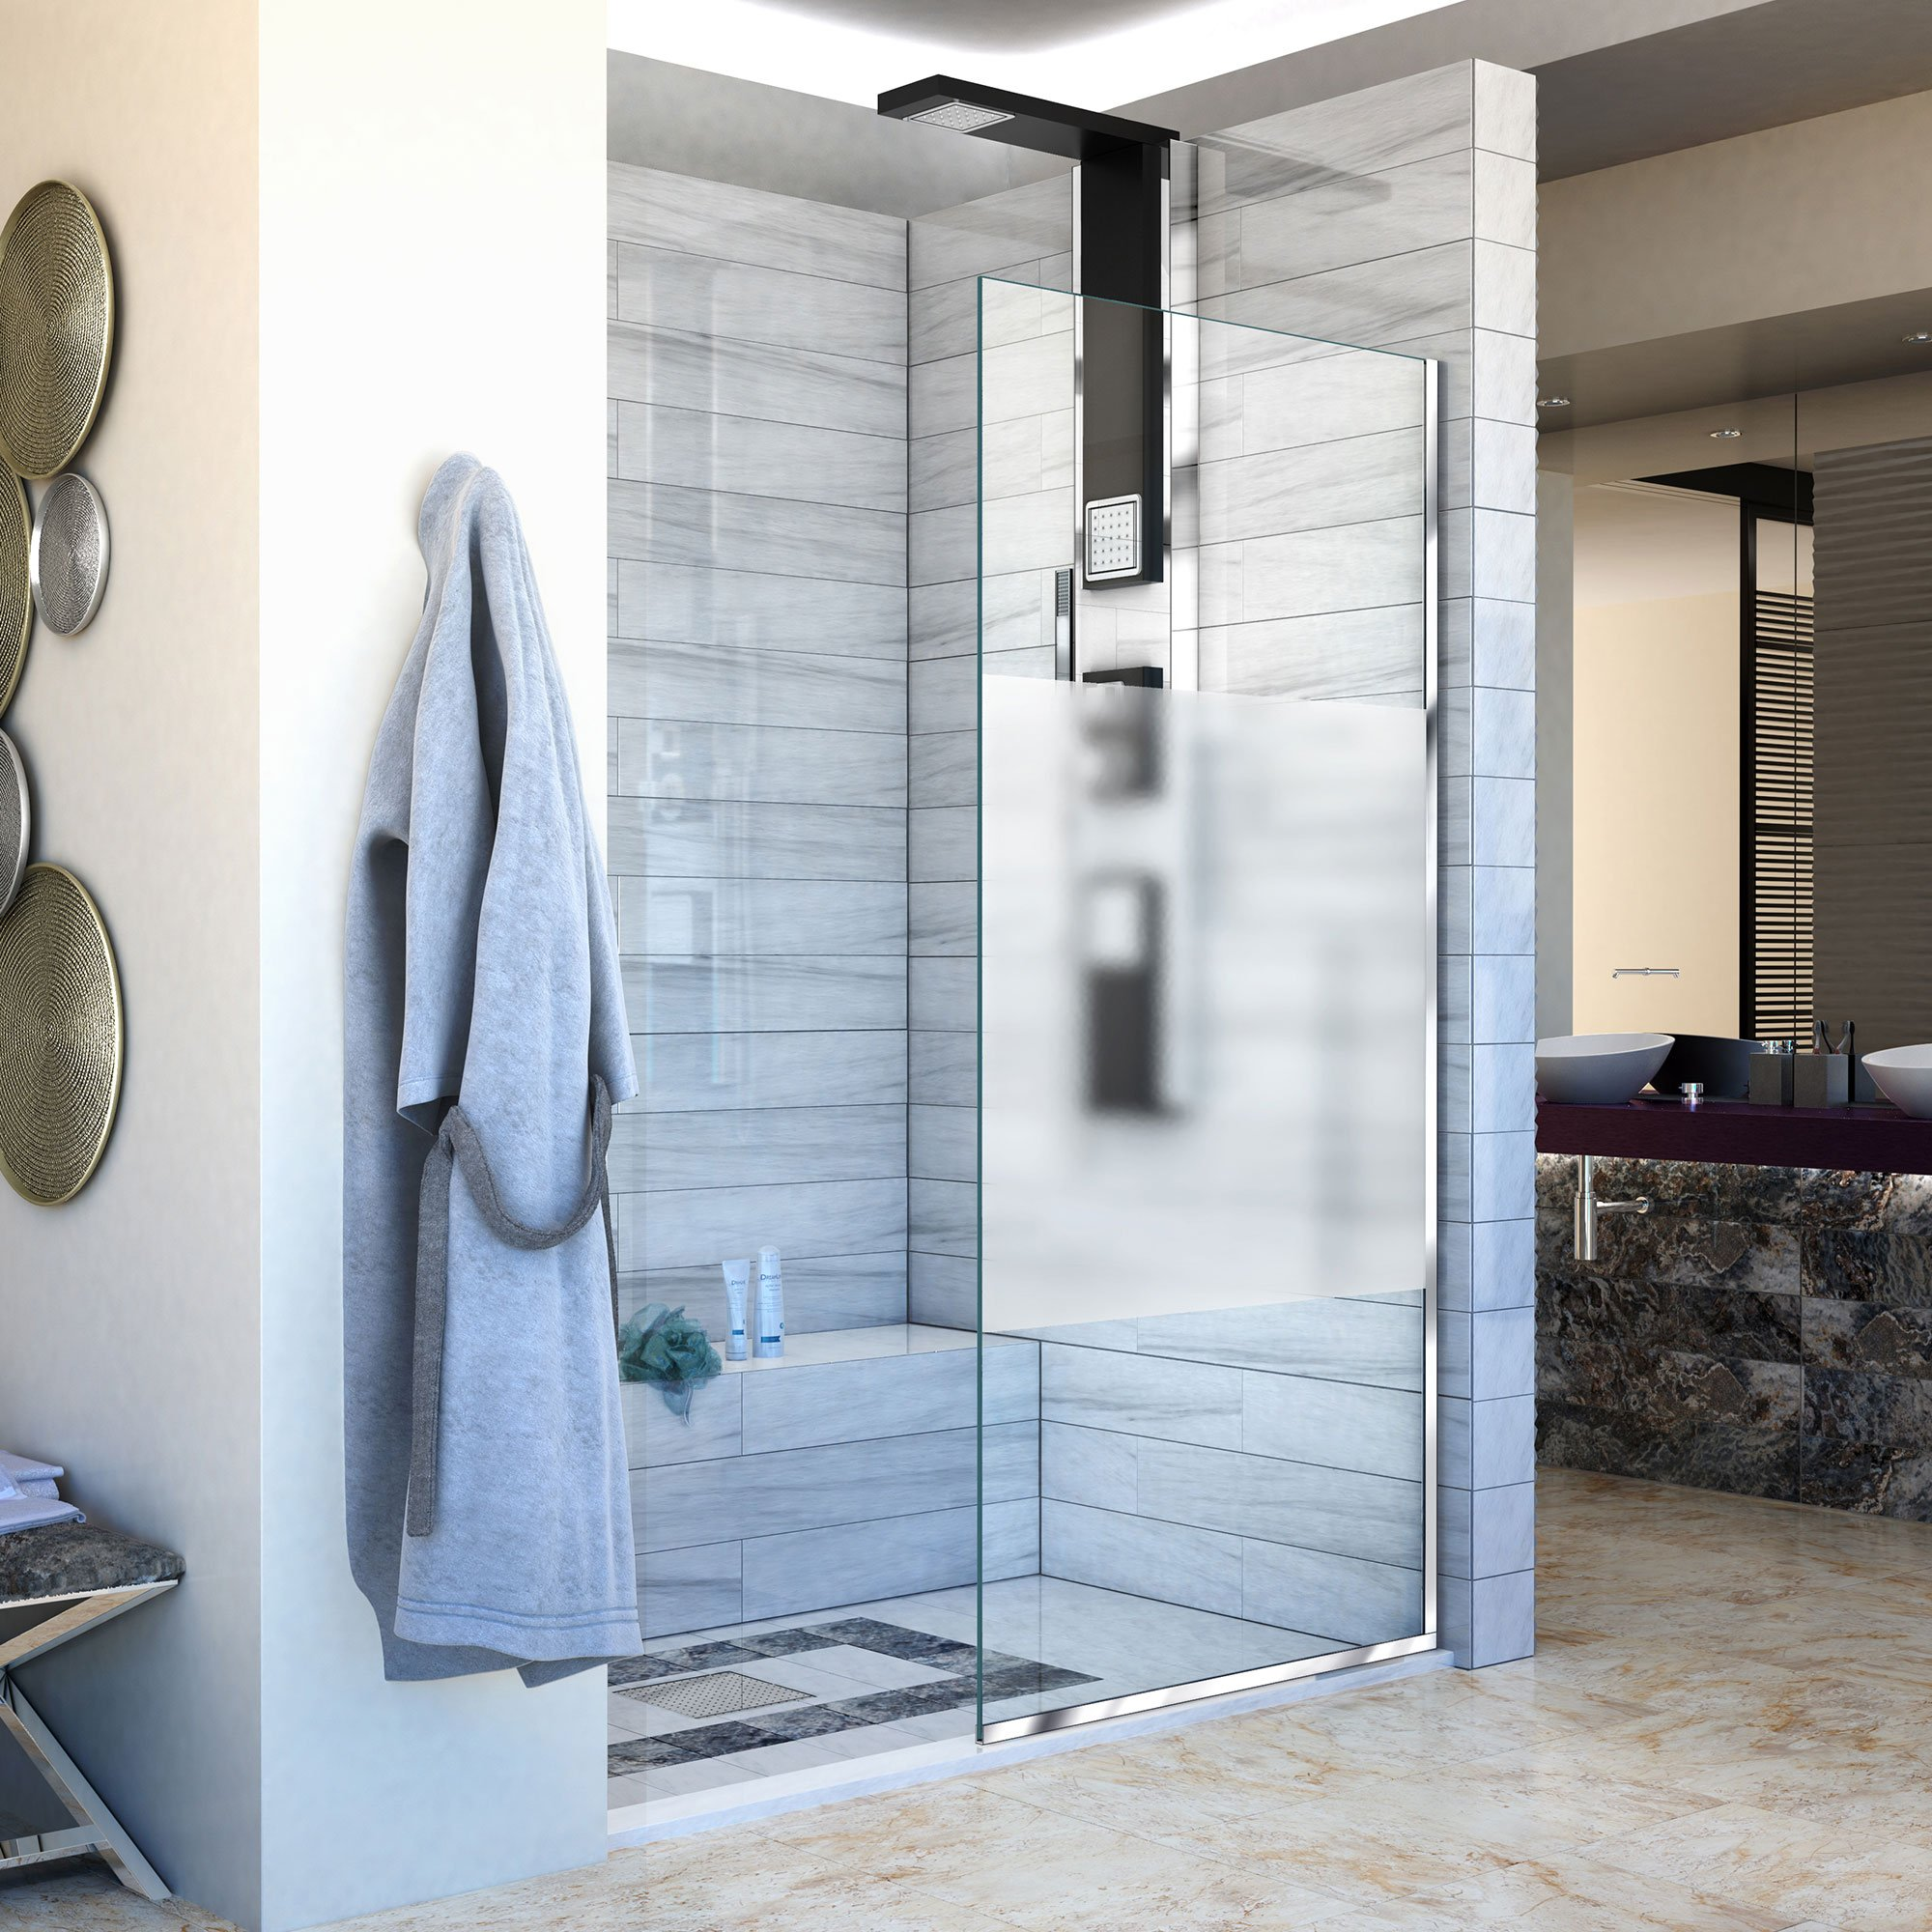 Best Rated in Bathtub Sliding Doors & Helpful Customer Reviews ...